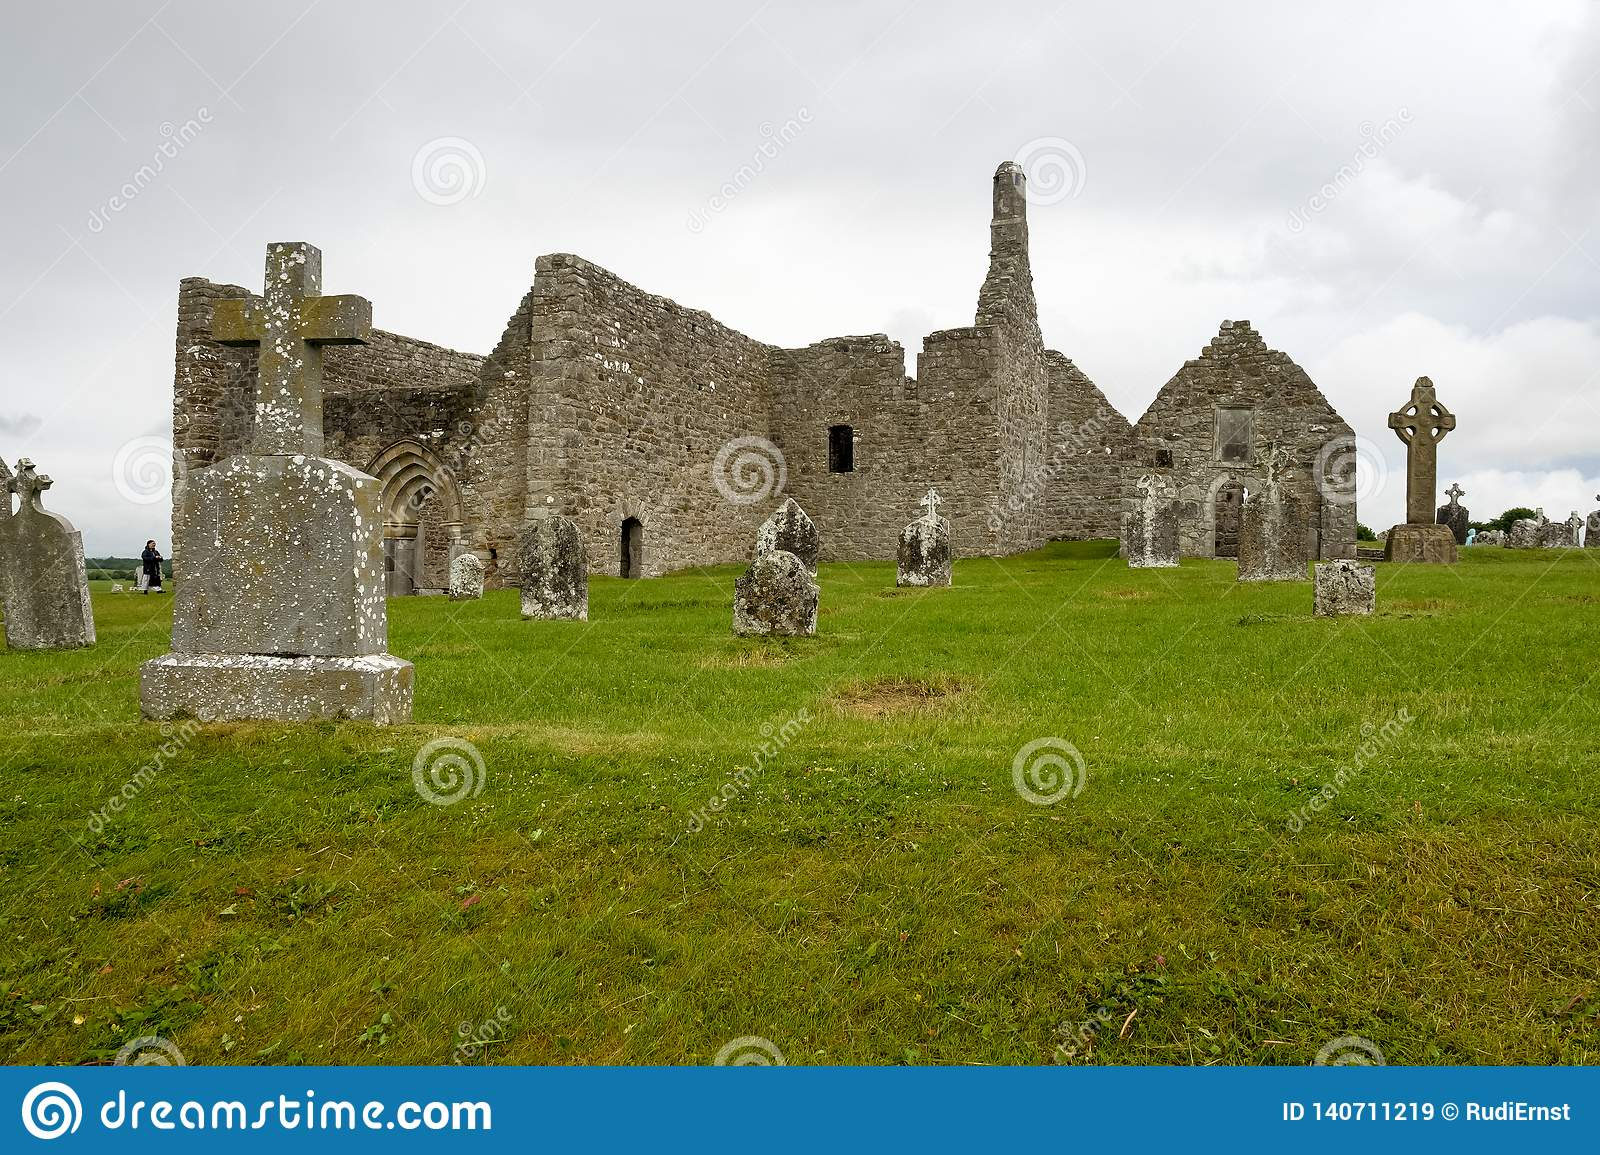 The ancient monastic city of Clonmacnoise in Ireland